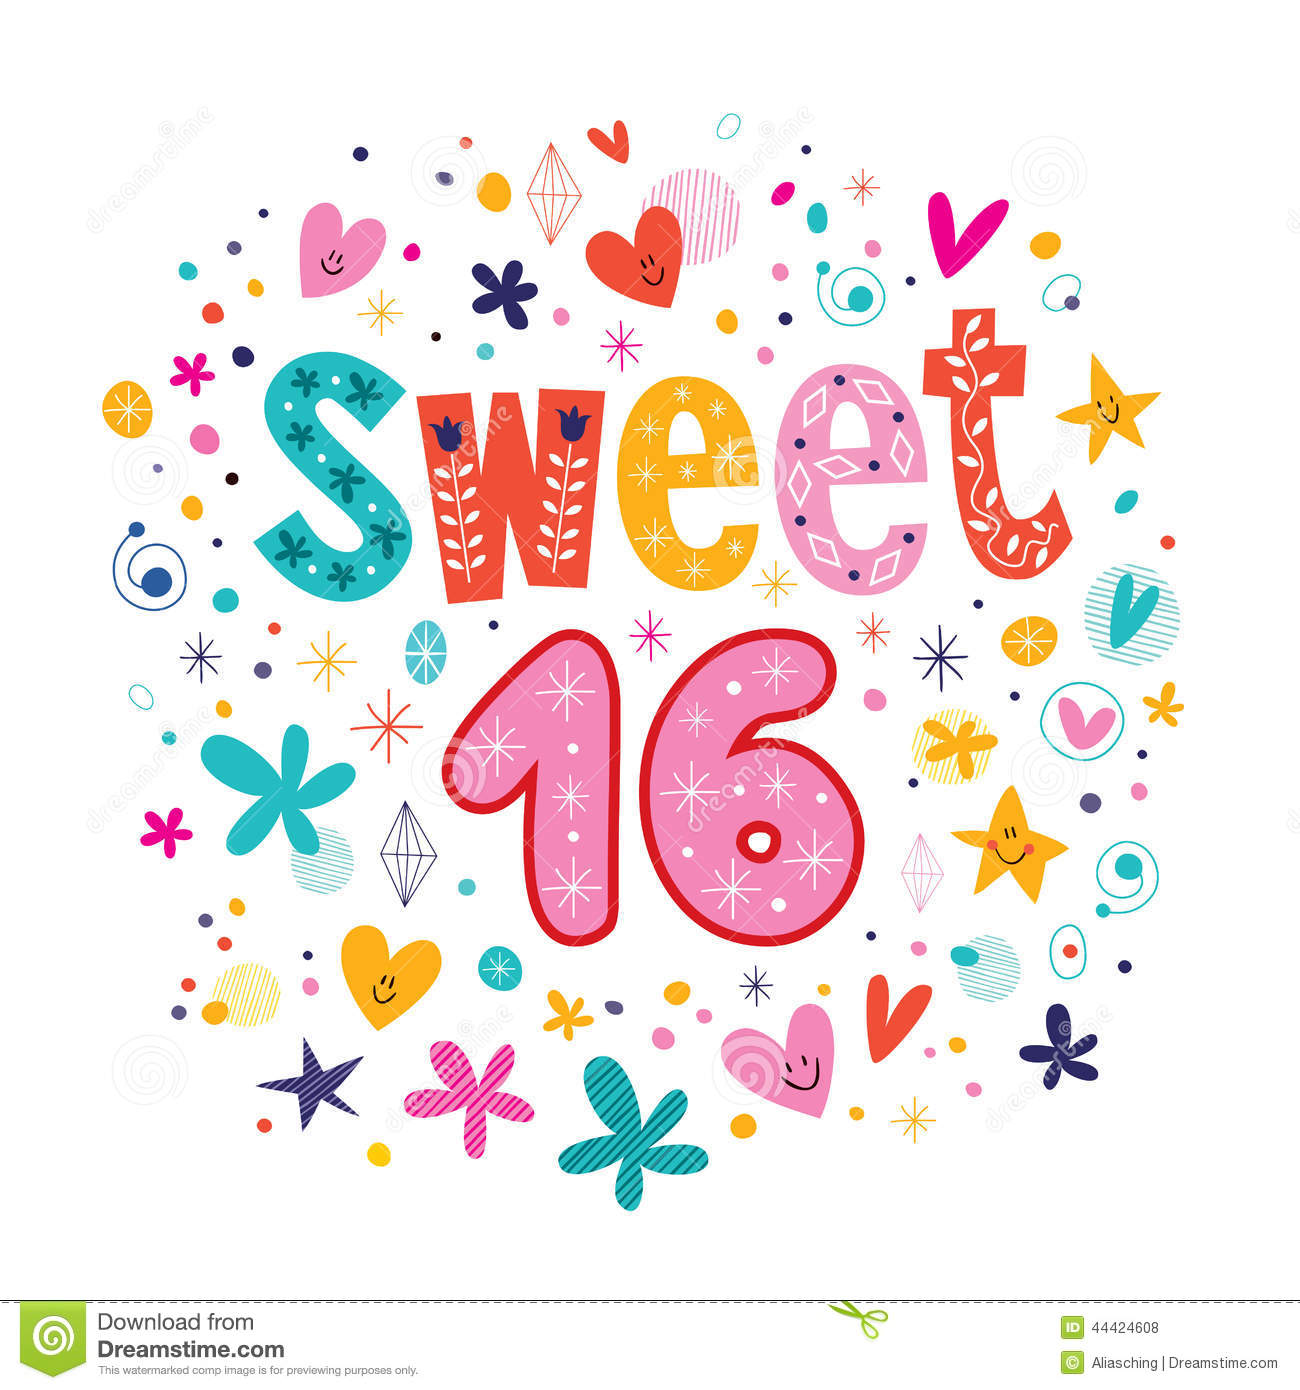 Sweet 16 Clipart 16th birthday clipart - clipart kid